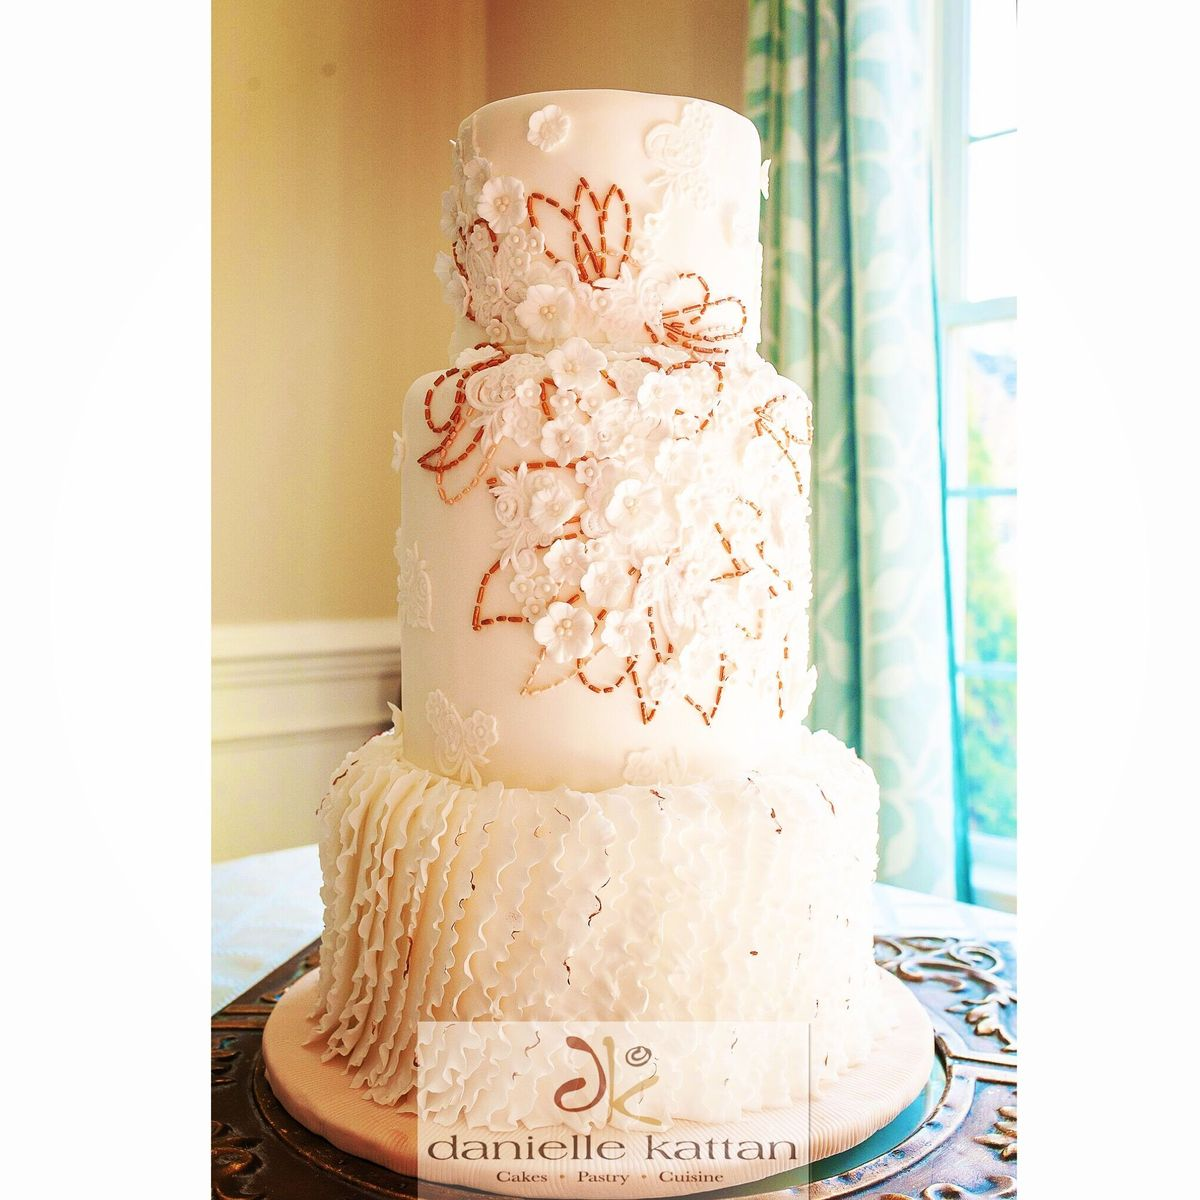 Wedding Cakes Near Greensboro, NC. Danielle Kattan Cakes